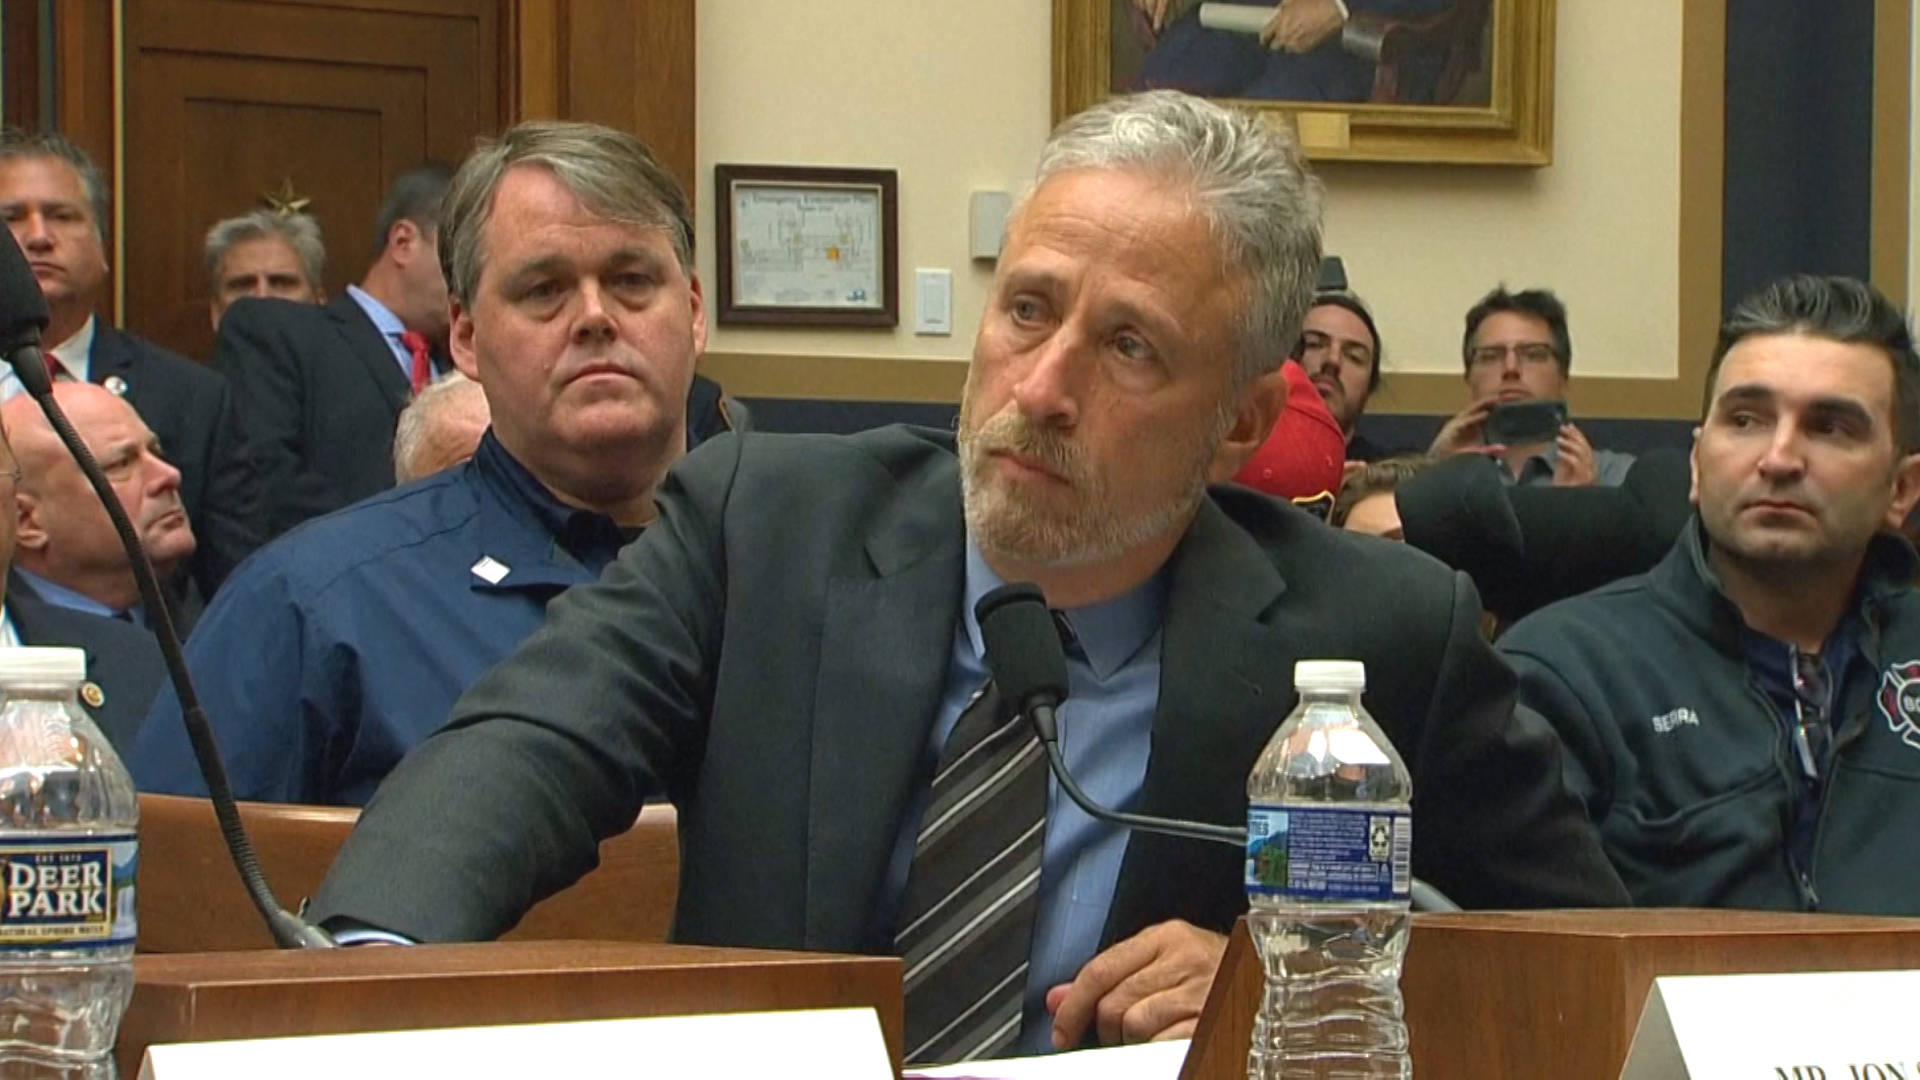 Jon Stewart Blasts Congress over Funding for 9/11 Responders